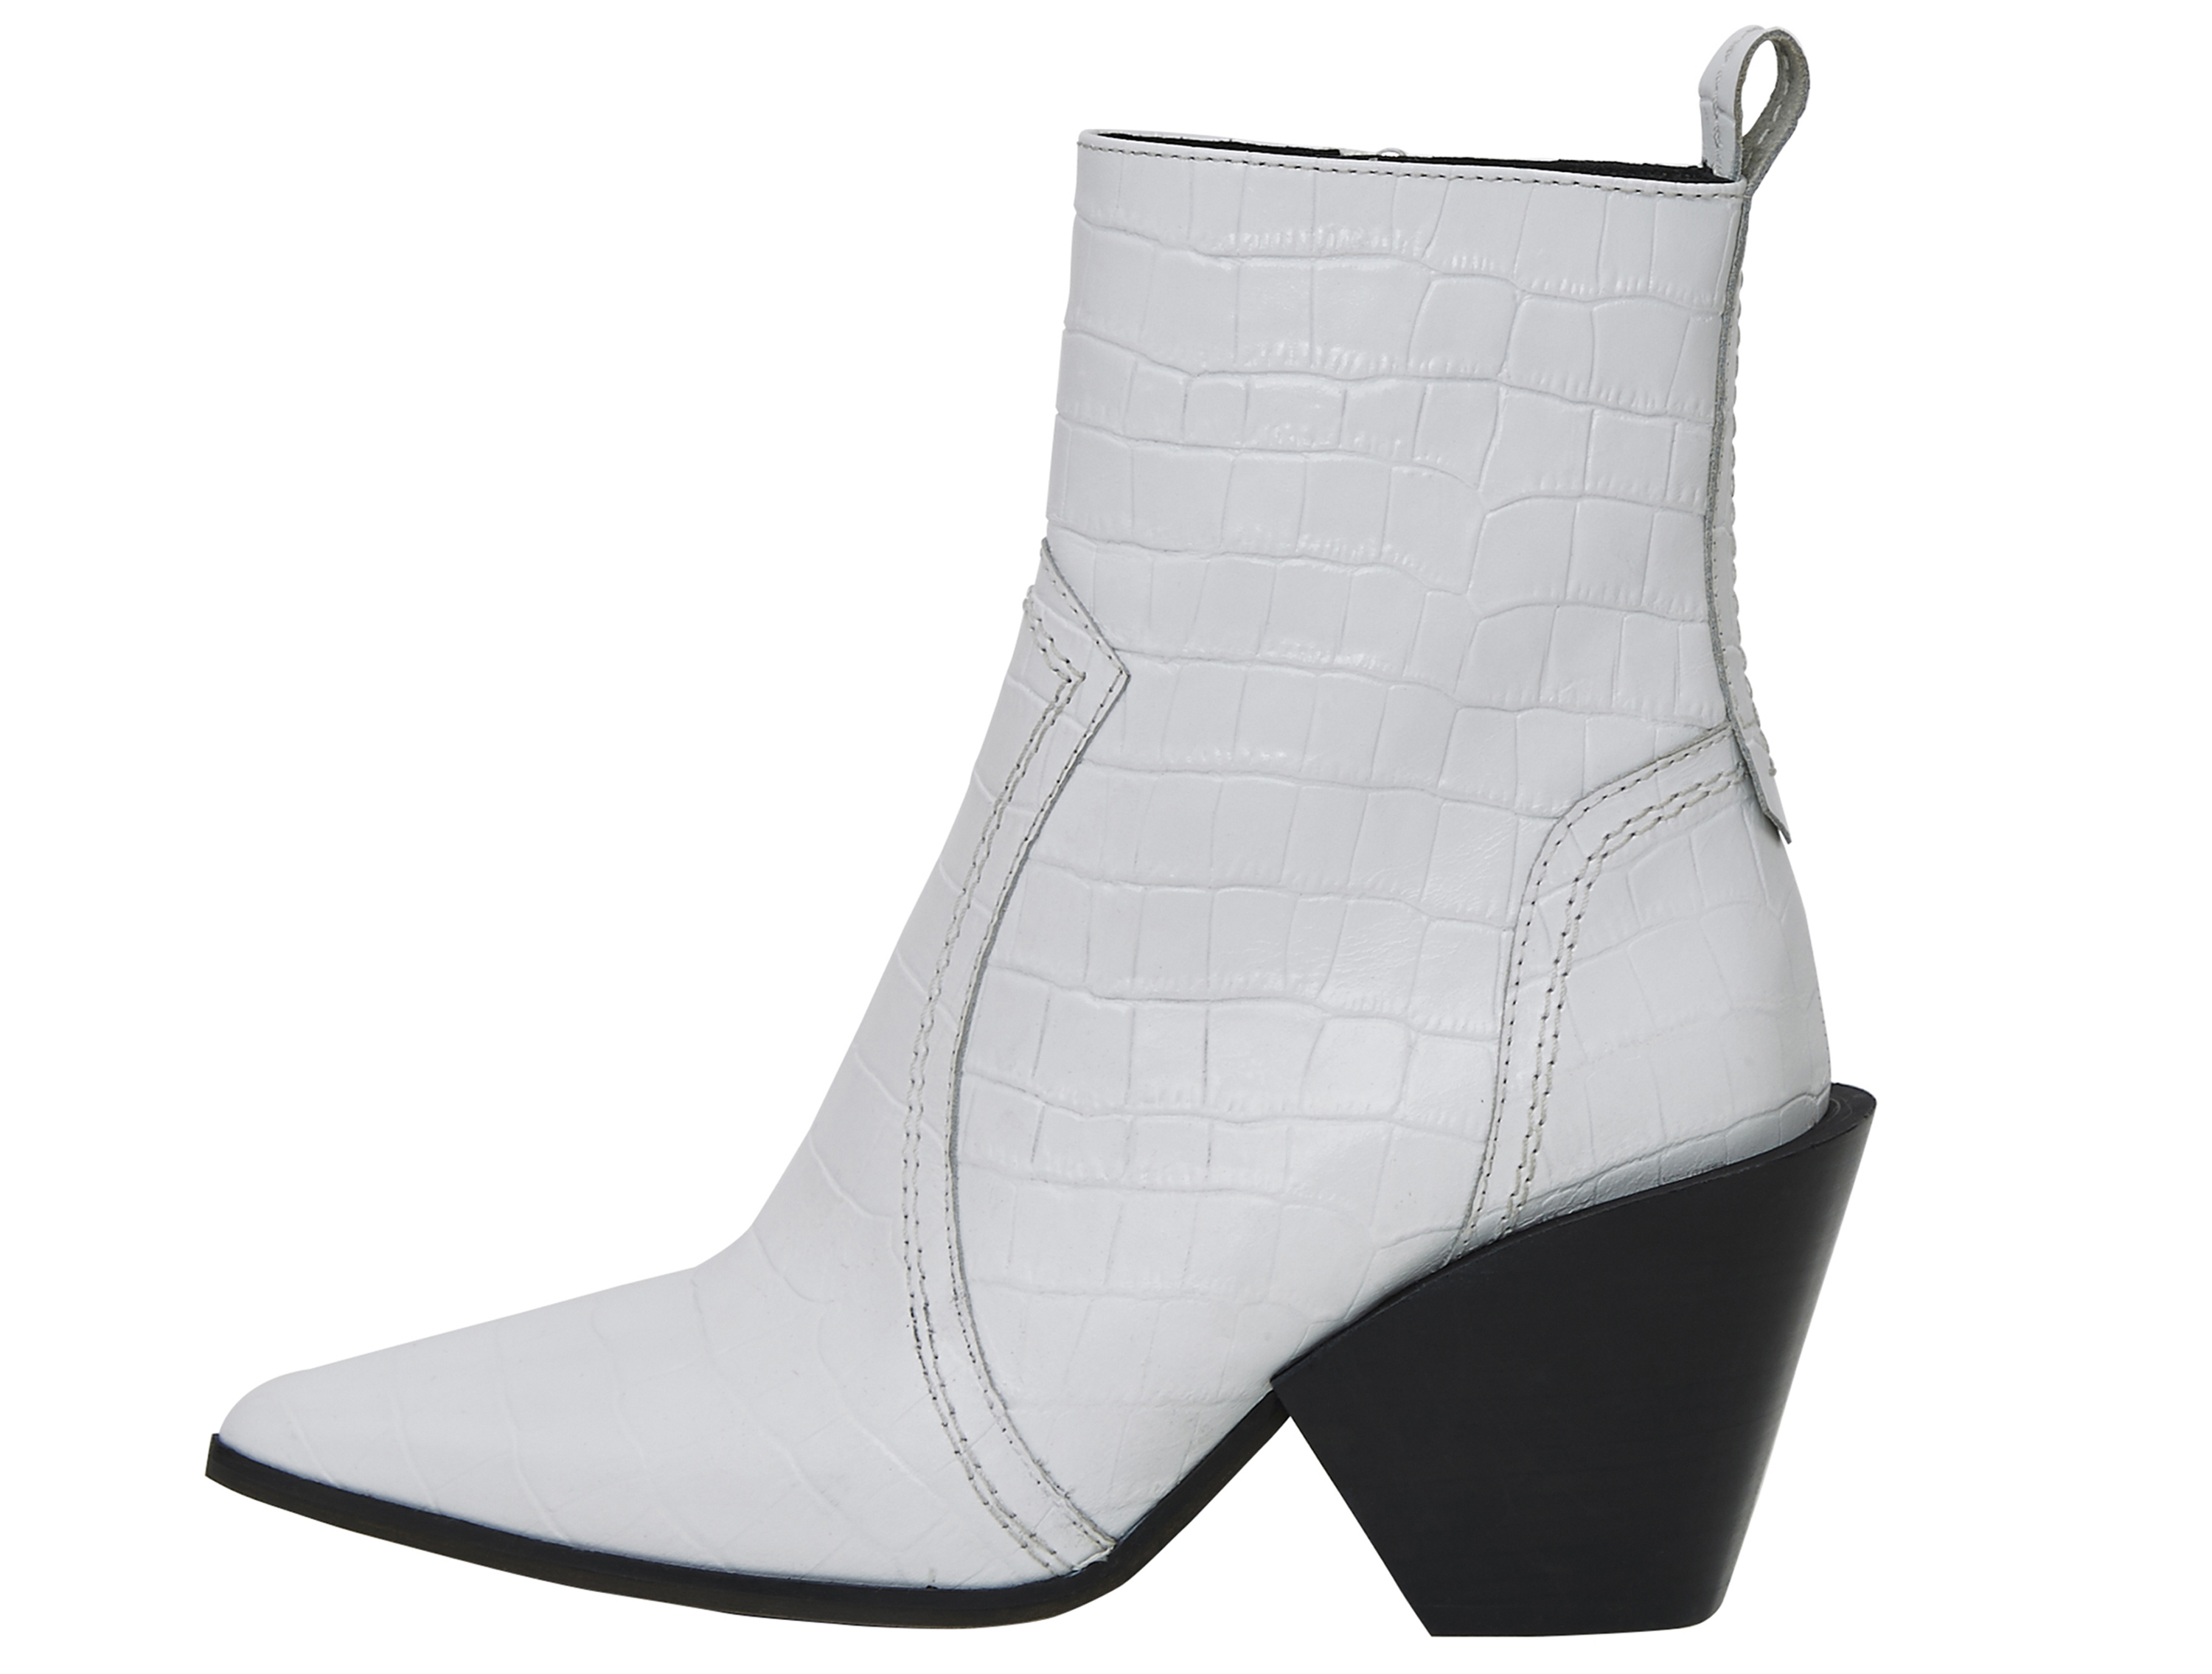 Office Avail Western Boots White Croc Leather, £99/AED446.87